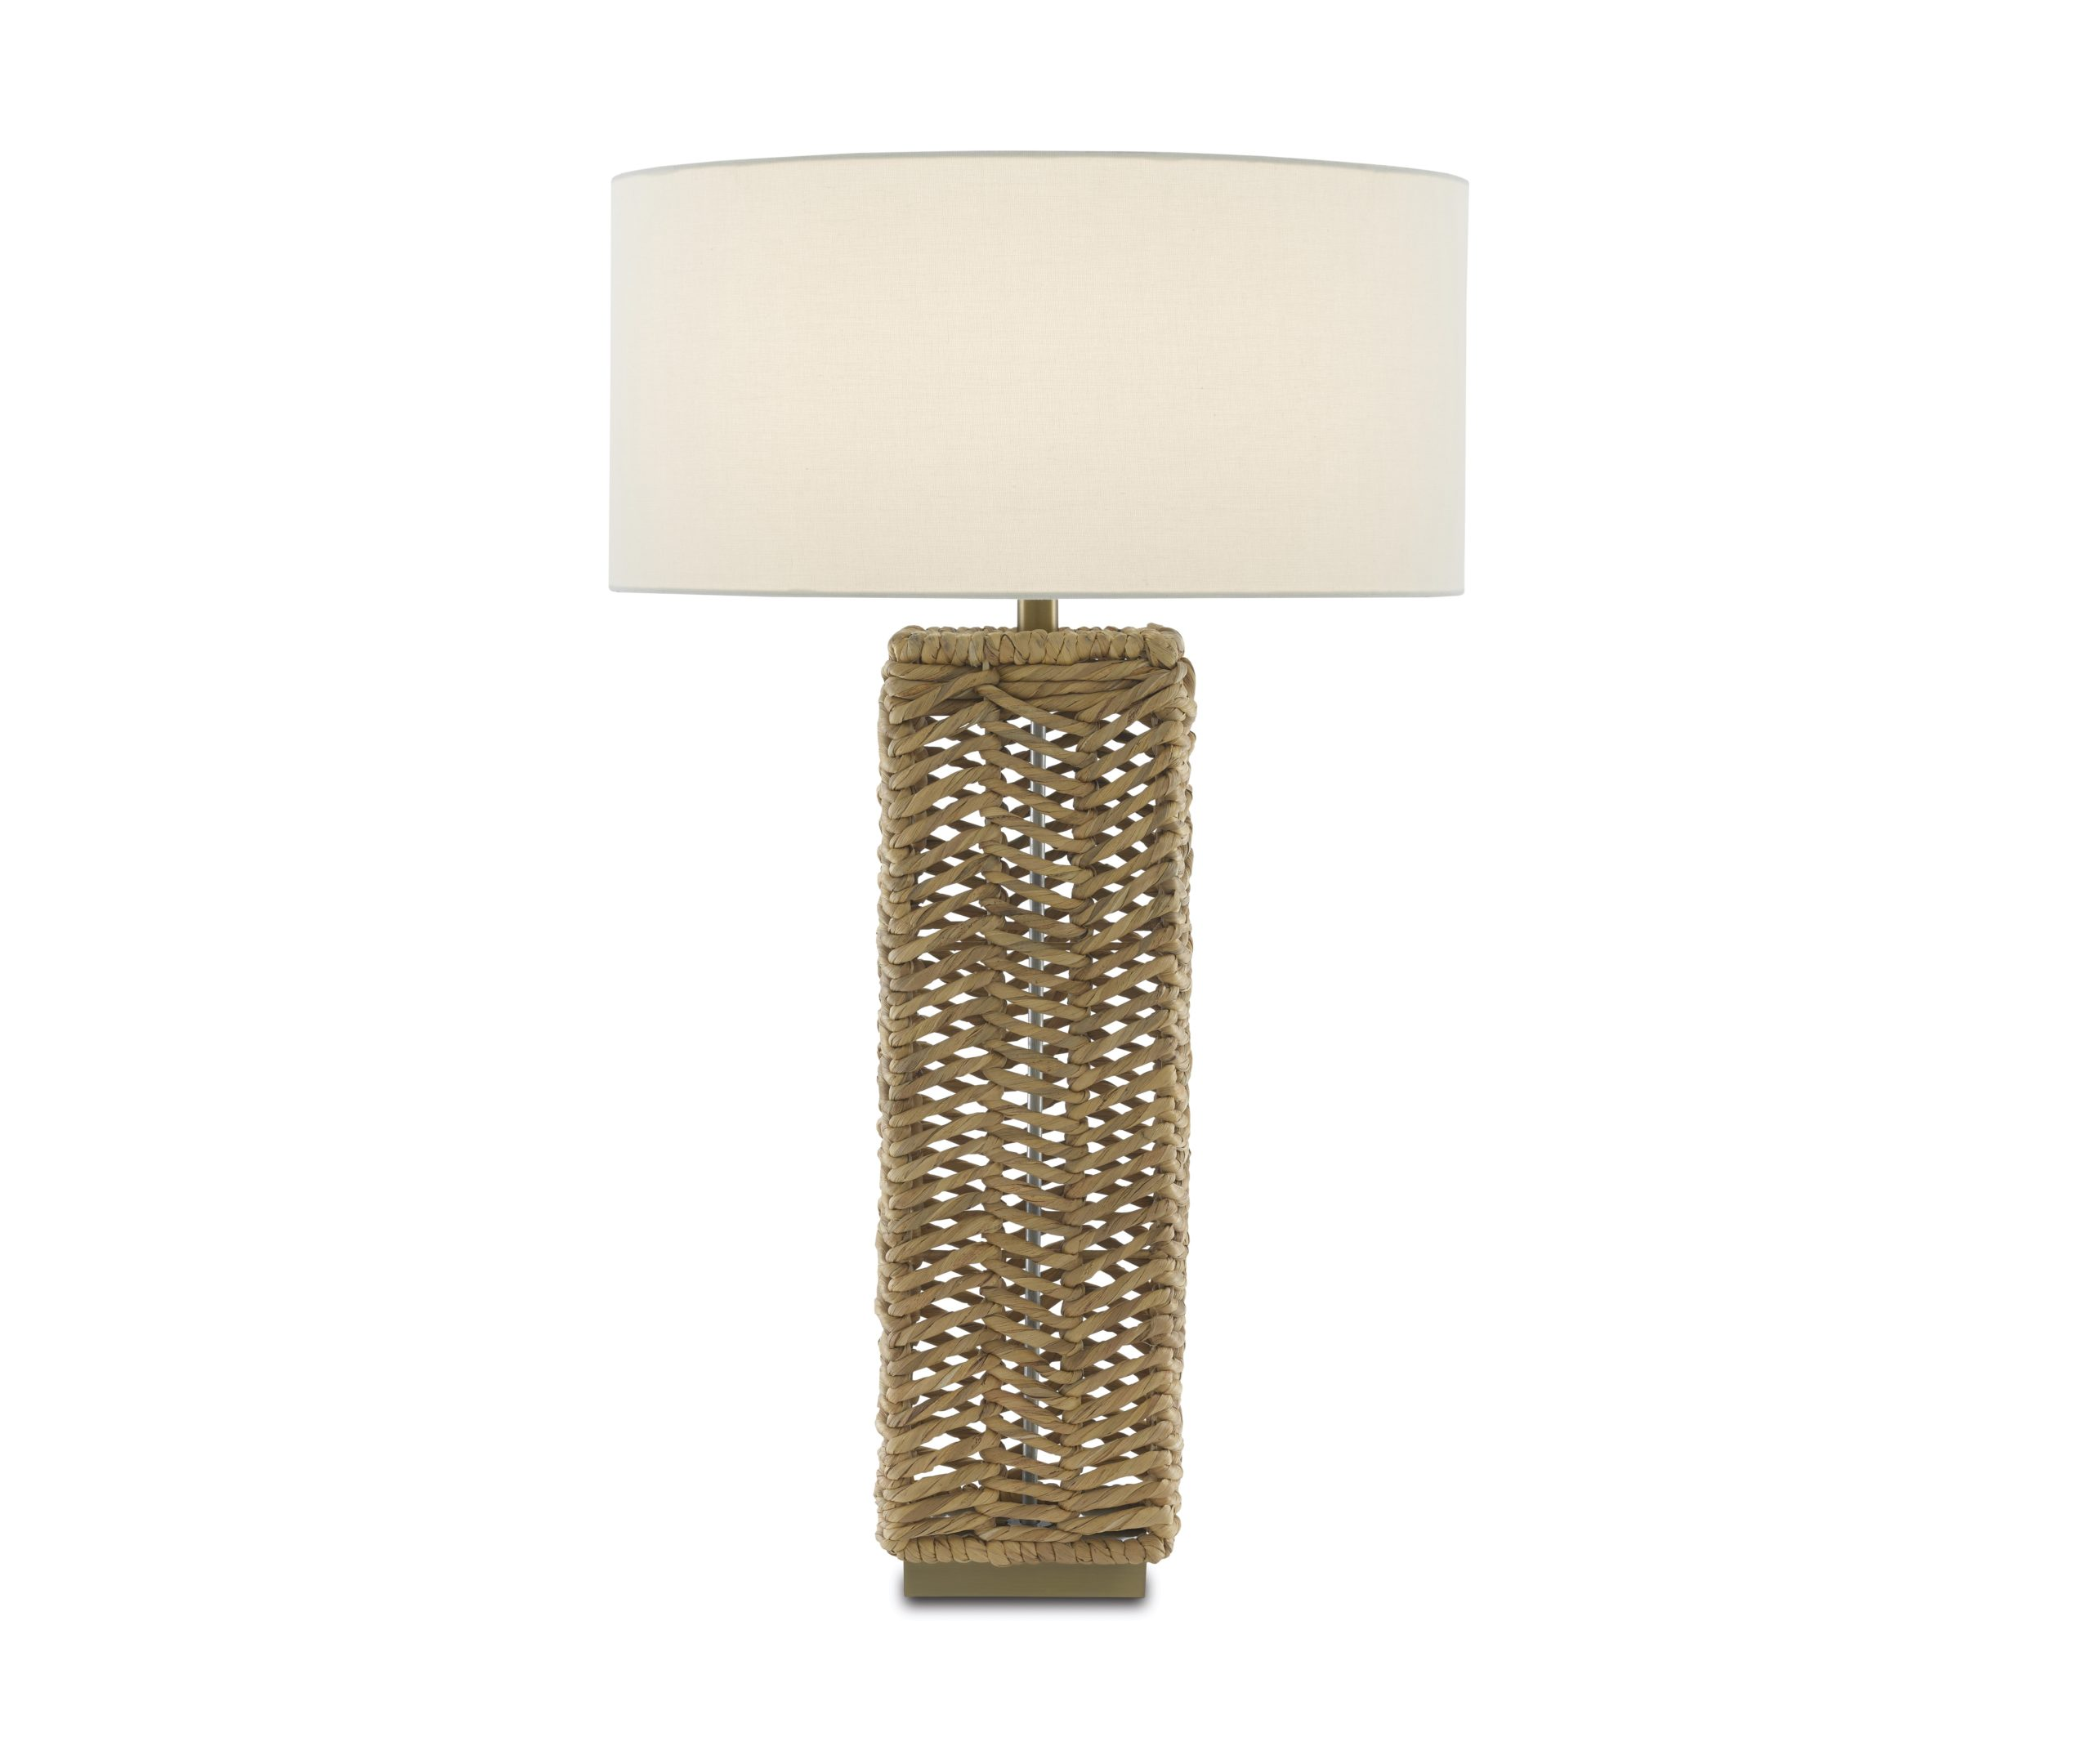 NYDC_WNWN_currey_and_co_products_torquay_table_lamp_6000-0680_